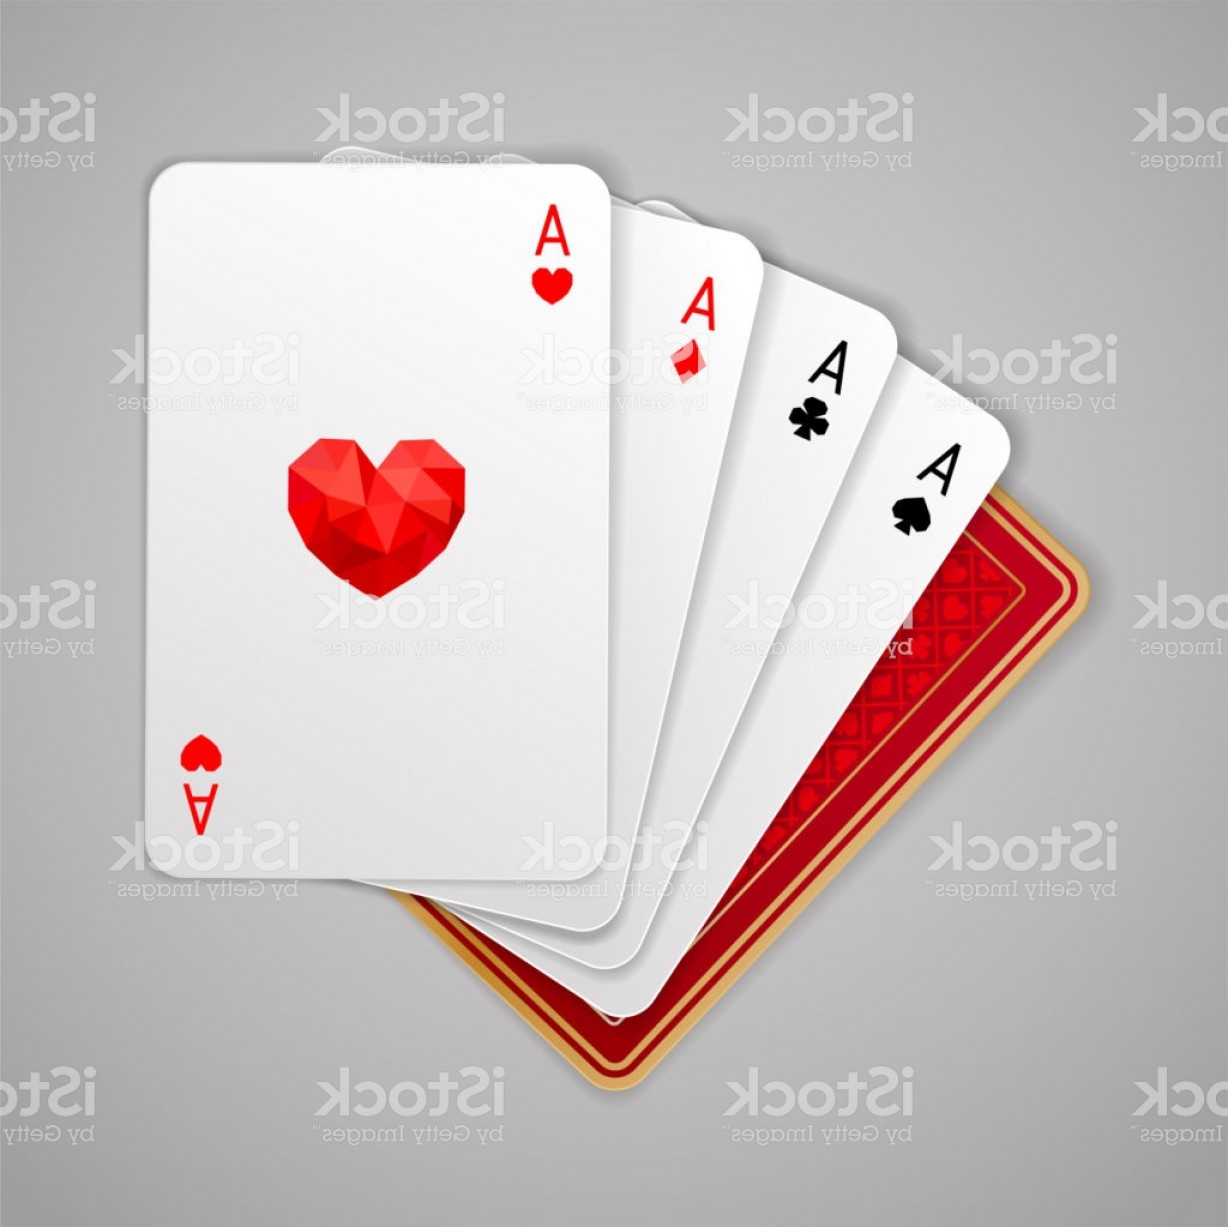 Poker Hand Vector: Four Aces In Five Playing Card Winning Poker Hand Gm